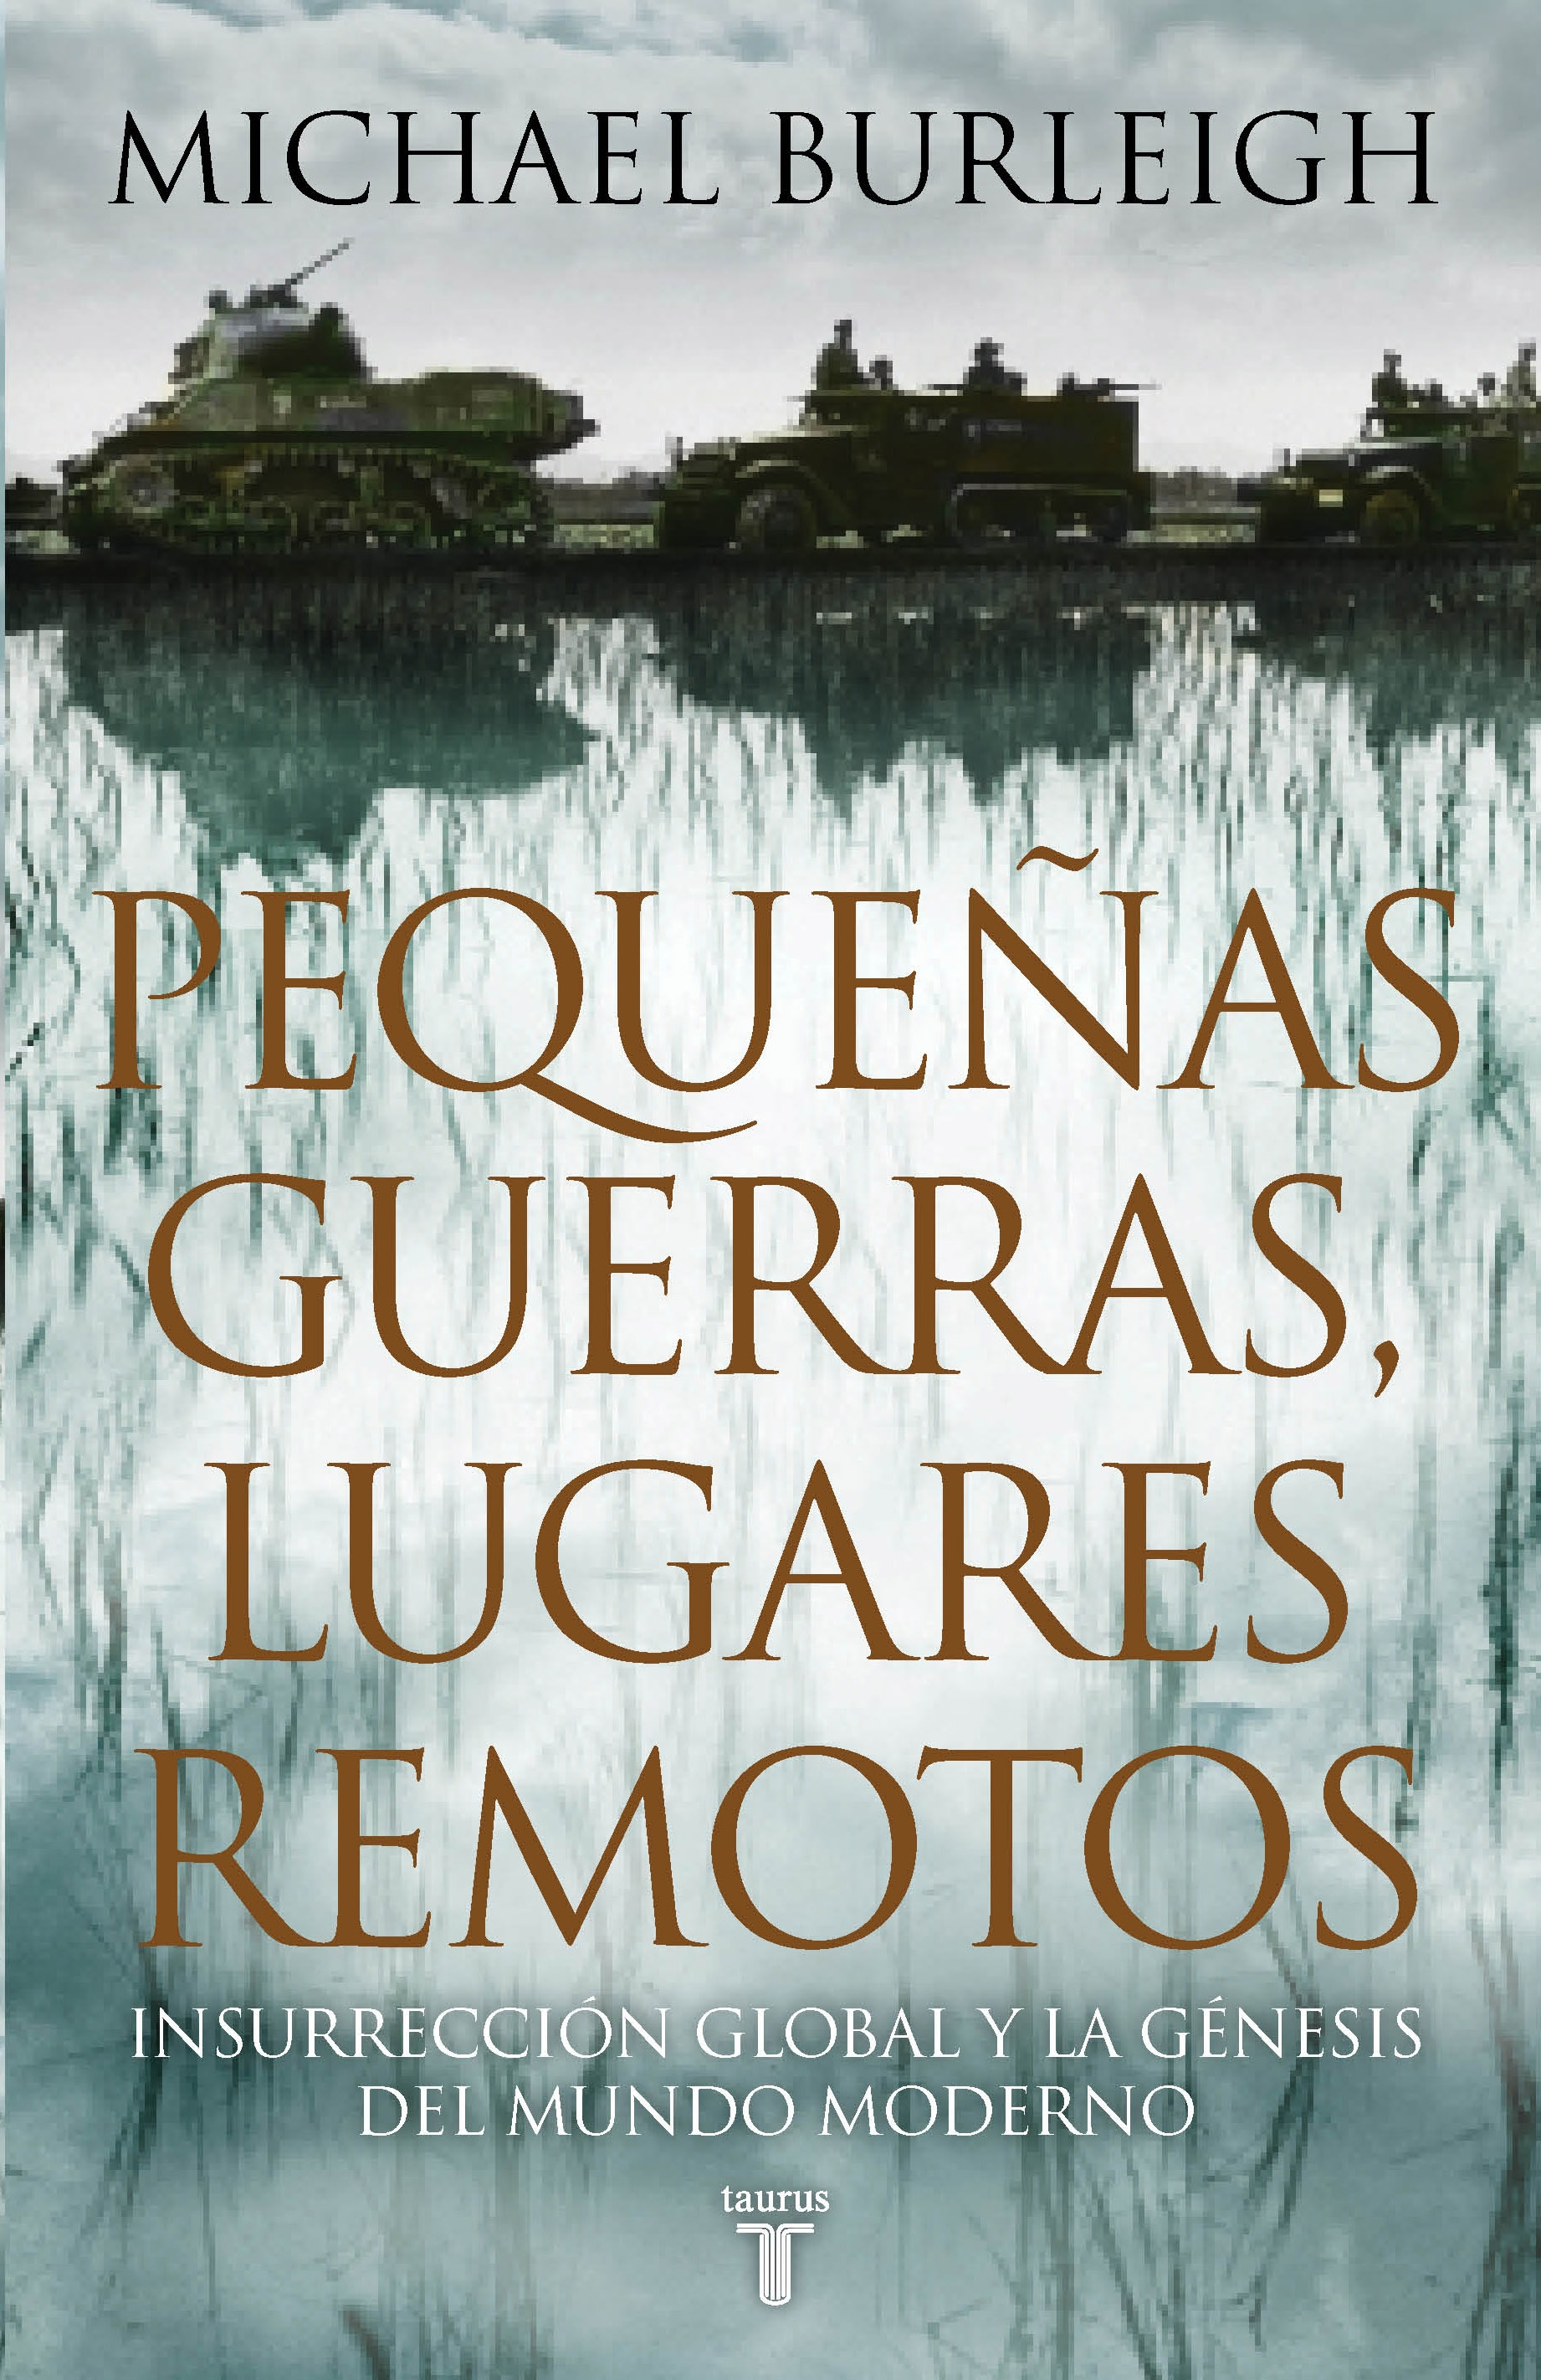 pequenas-guerras-lugares-remotos-insurreccion-global-y-la-genes-is-del-mundo-moderno-9788430607464